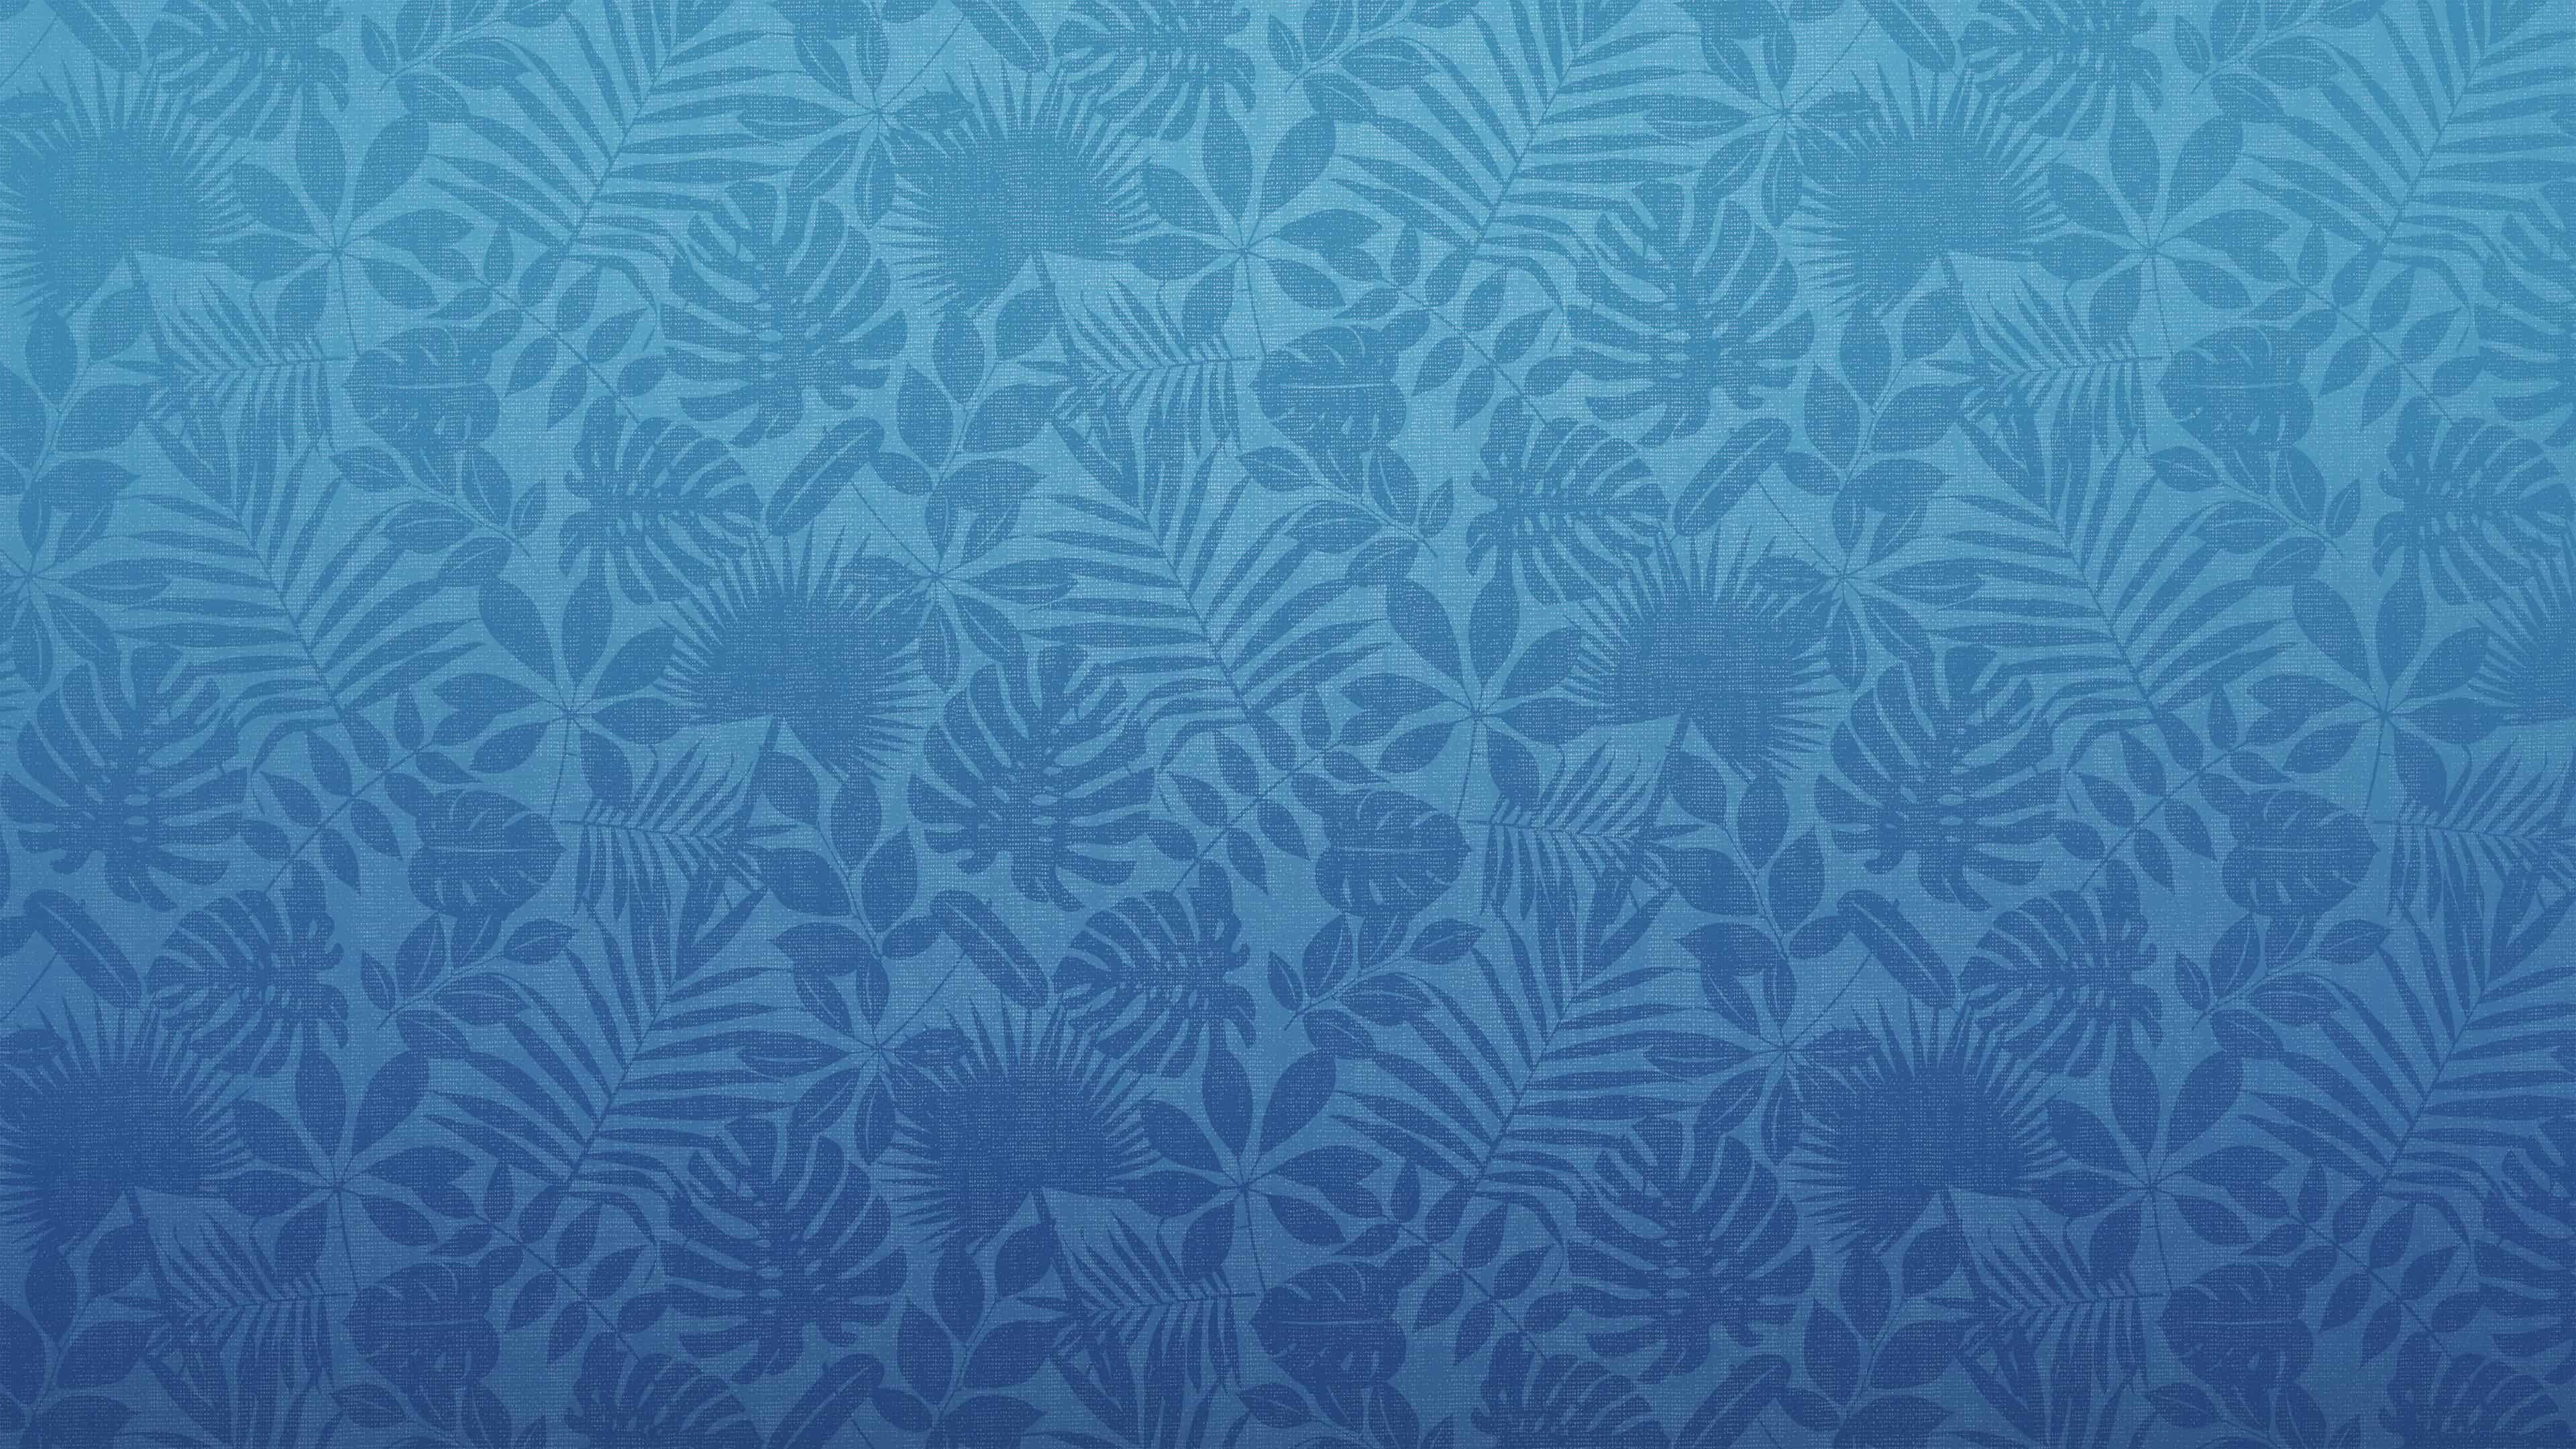 leaf pattern blue uhd 4k wallpaper